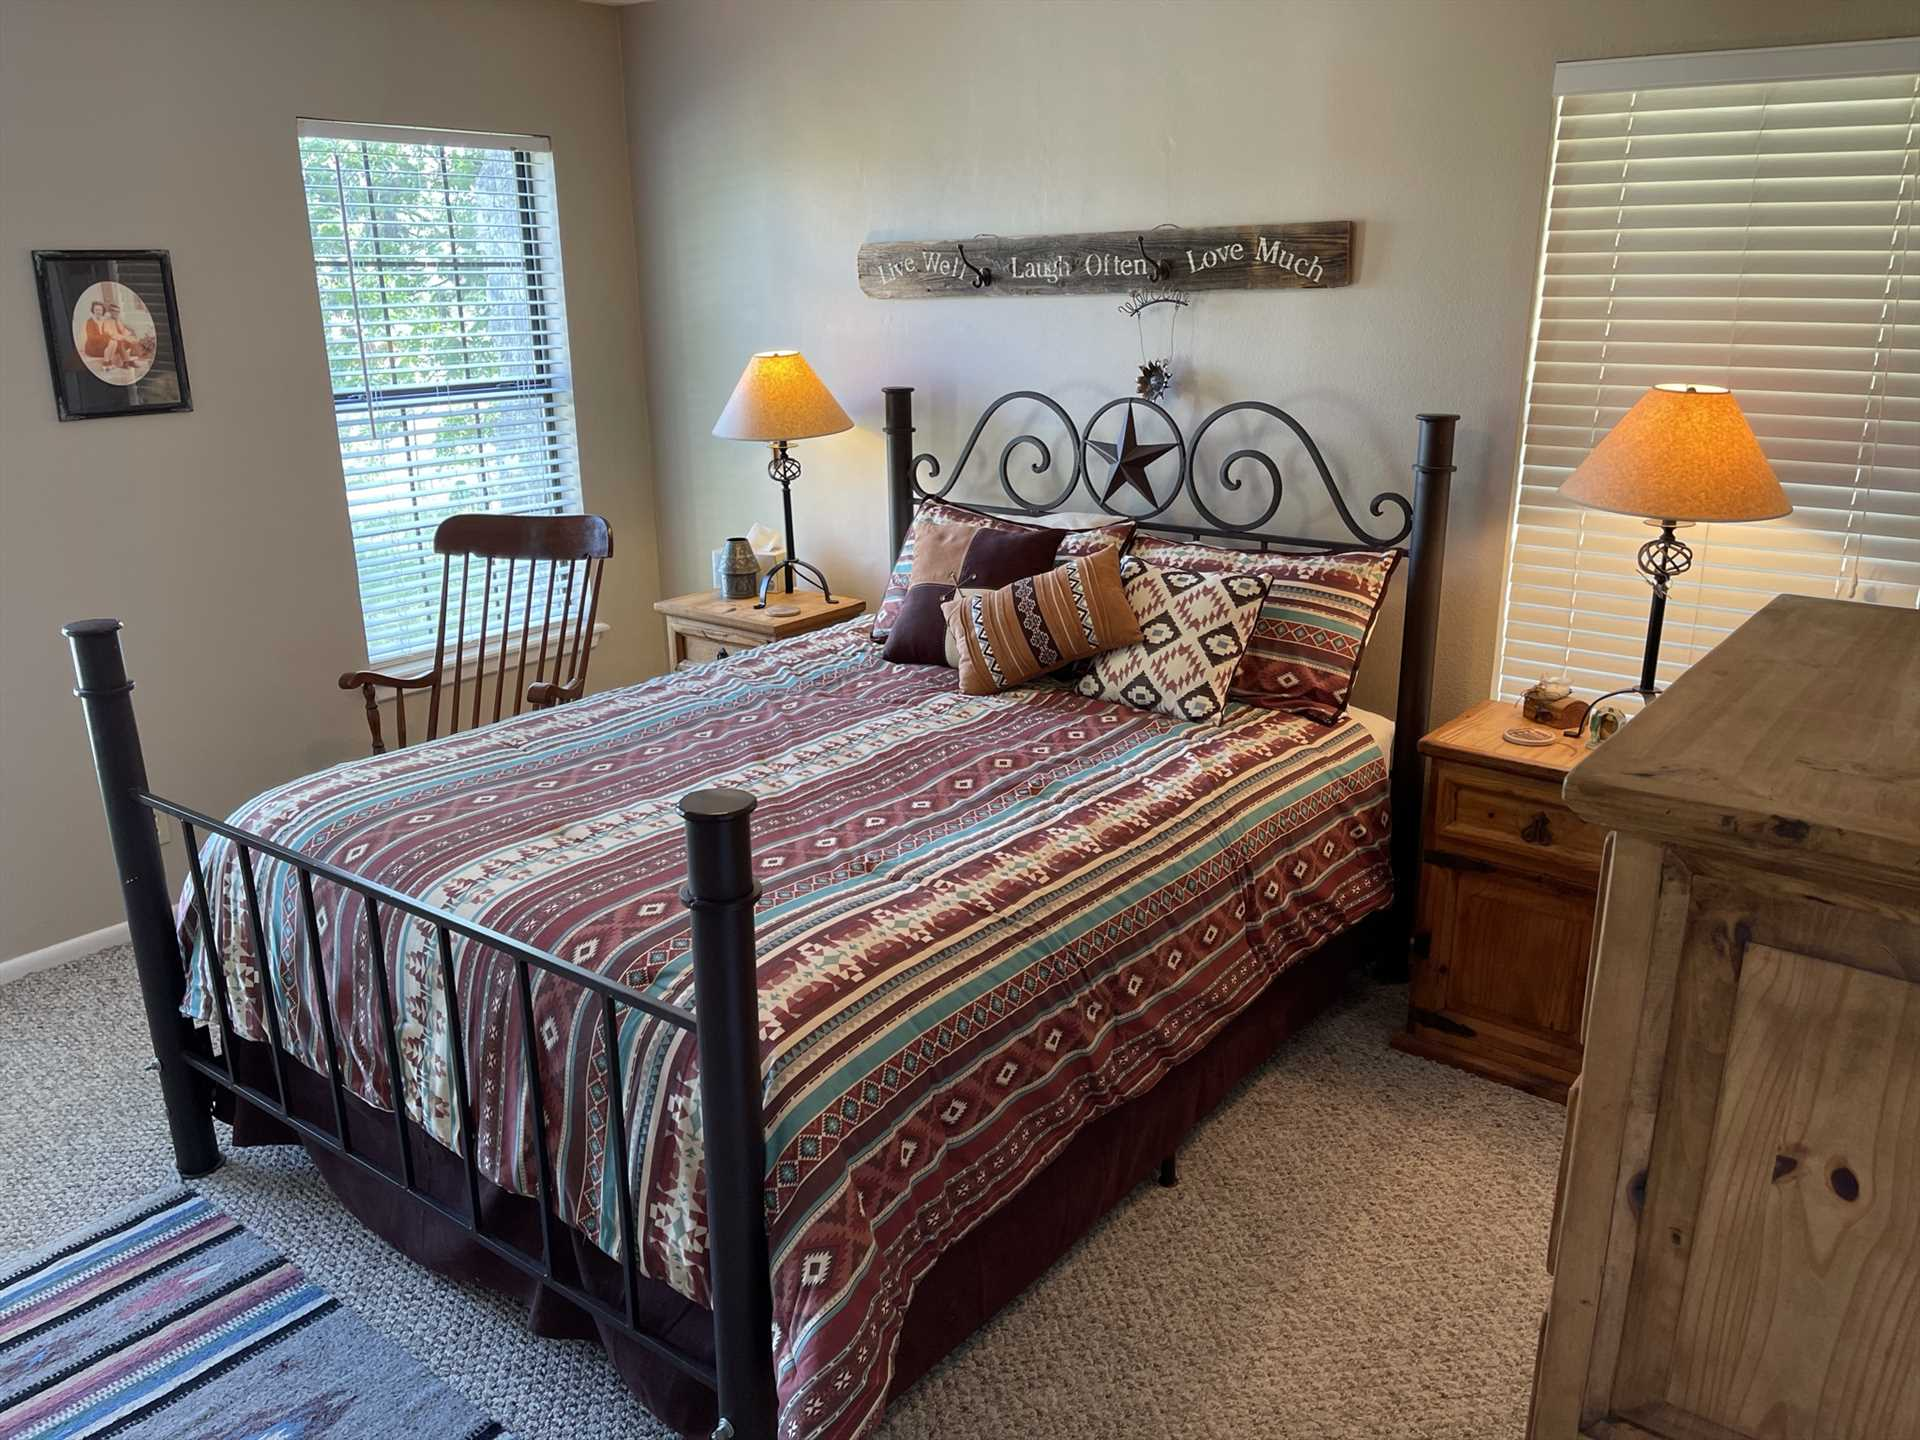 Natural light fills the master bedroom, which features a truly Texan place to sleep: a soft double bed with a Lone Star headboard!